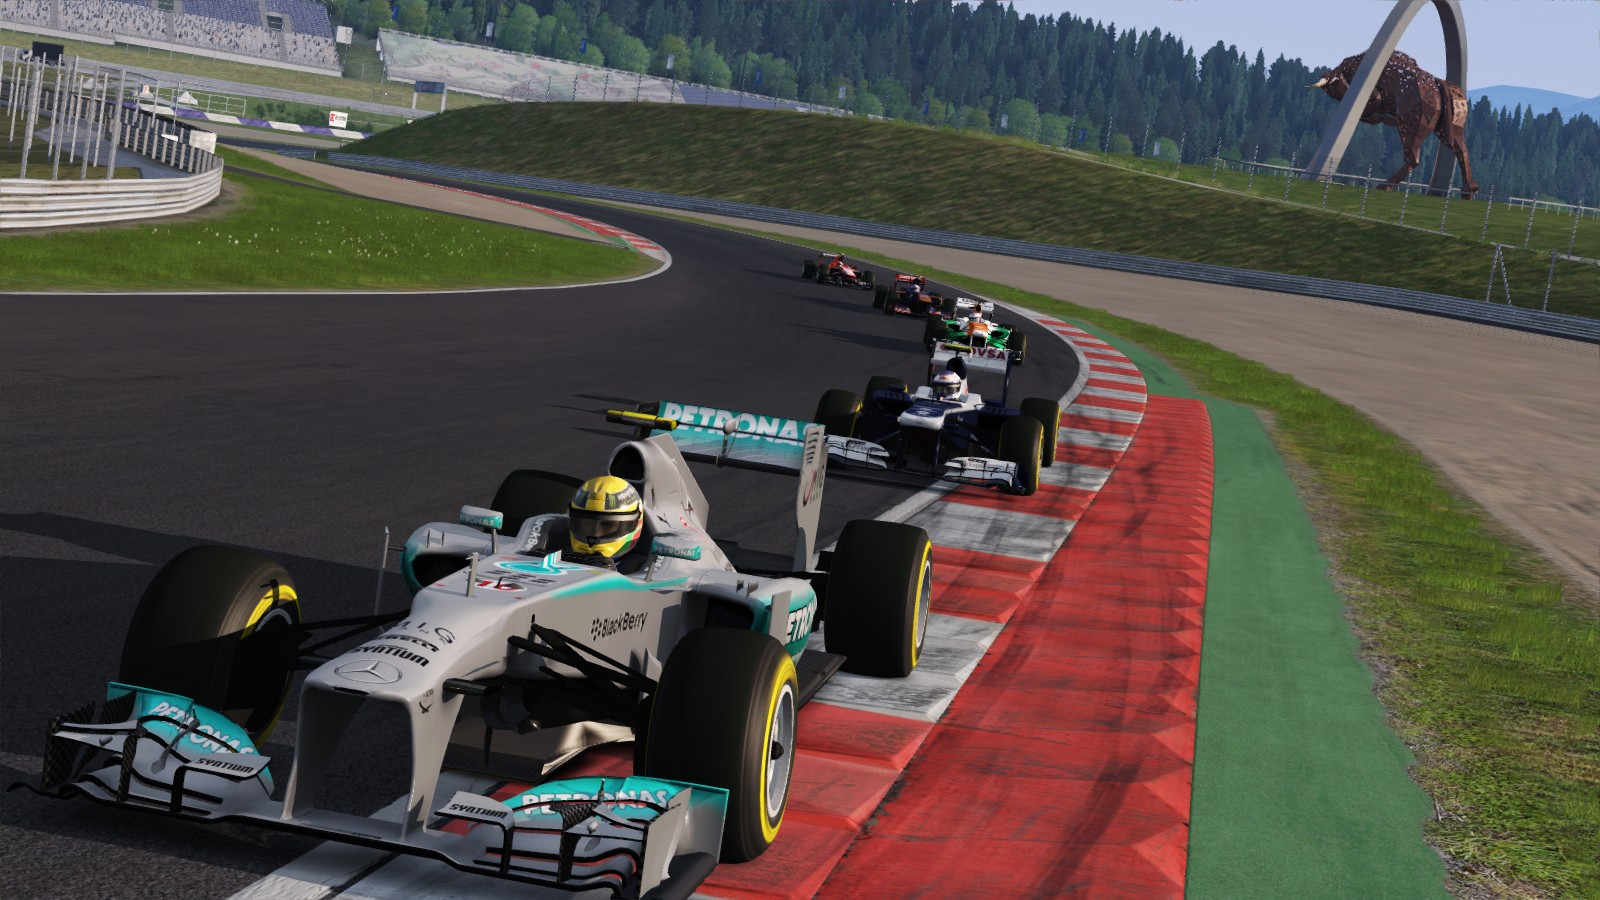 Screenshot_fo_2013_mclaren_le_ks_red_bull_ring_23-9-116-19-27-8.jpg